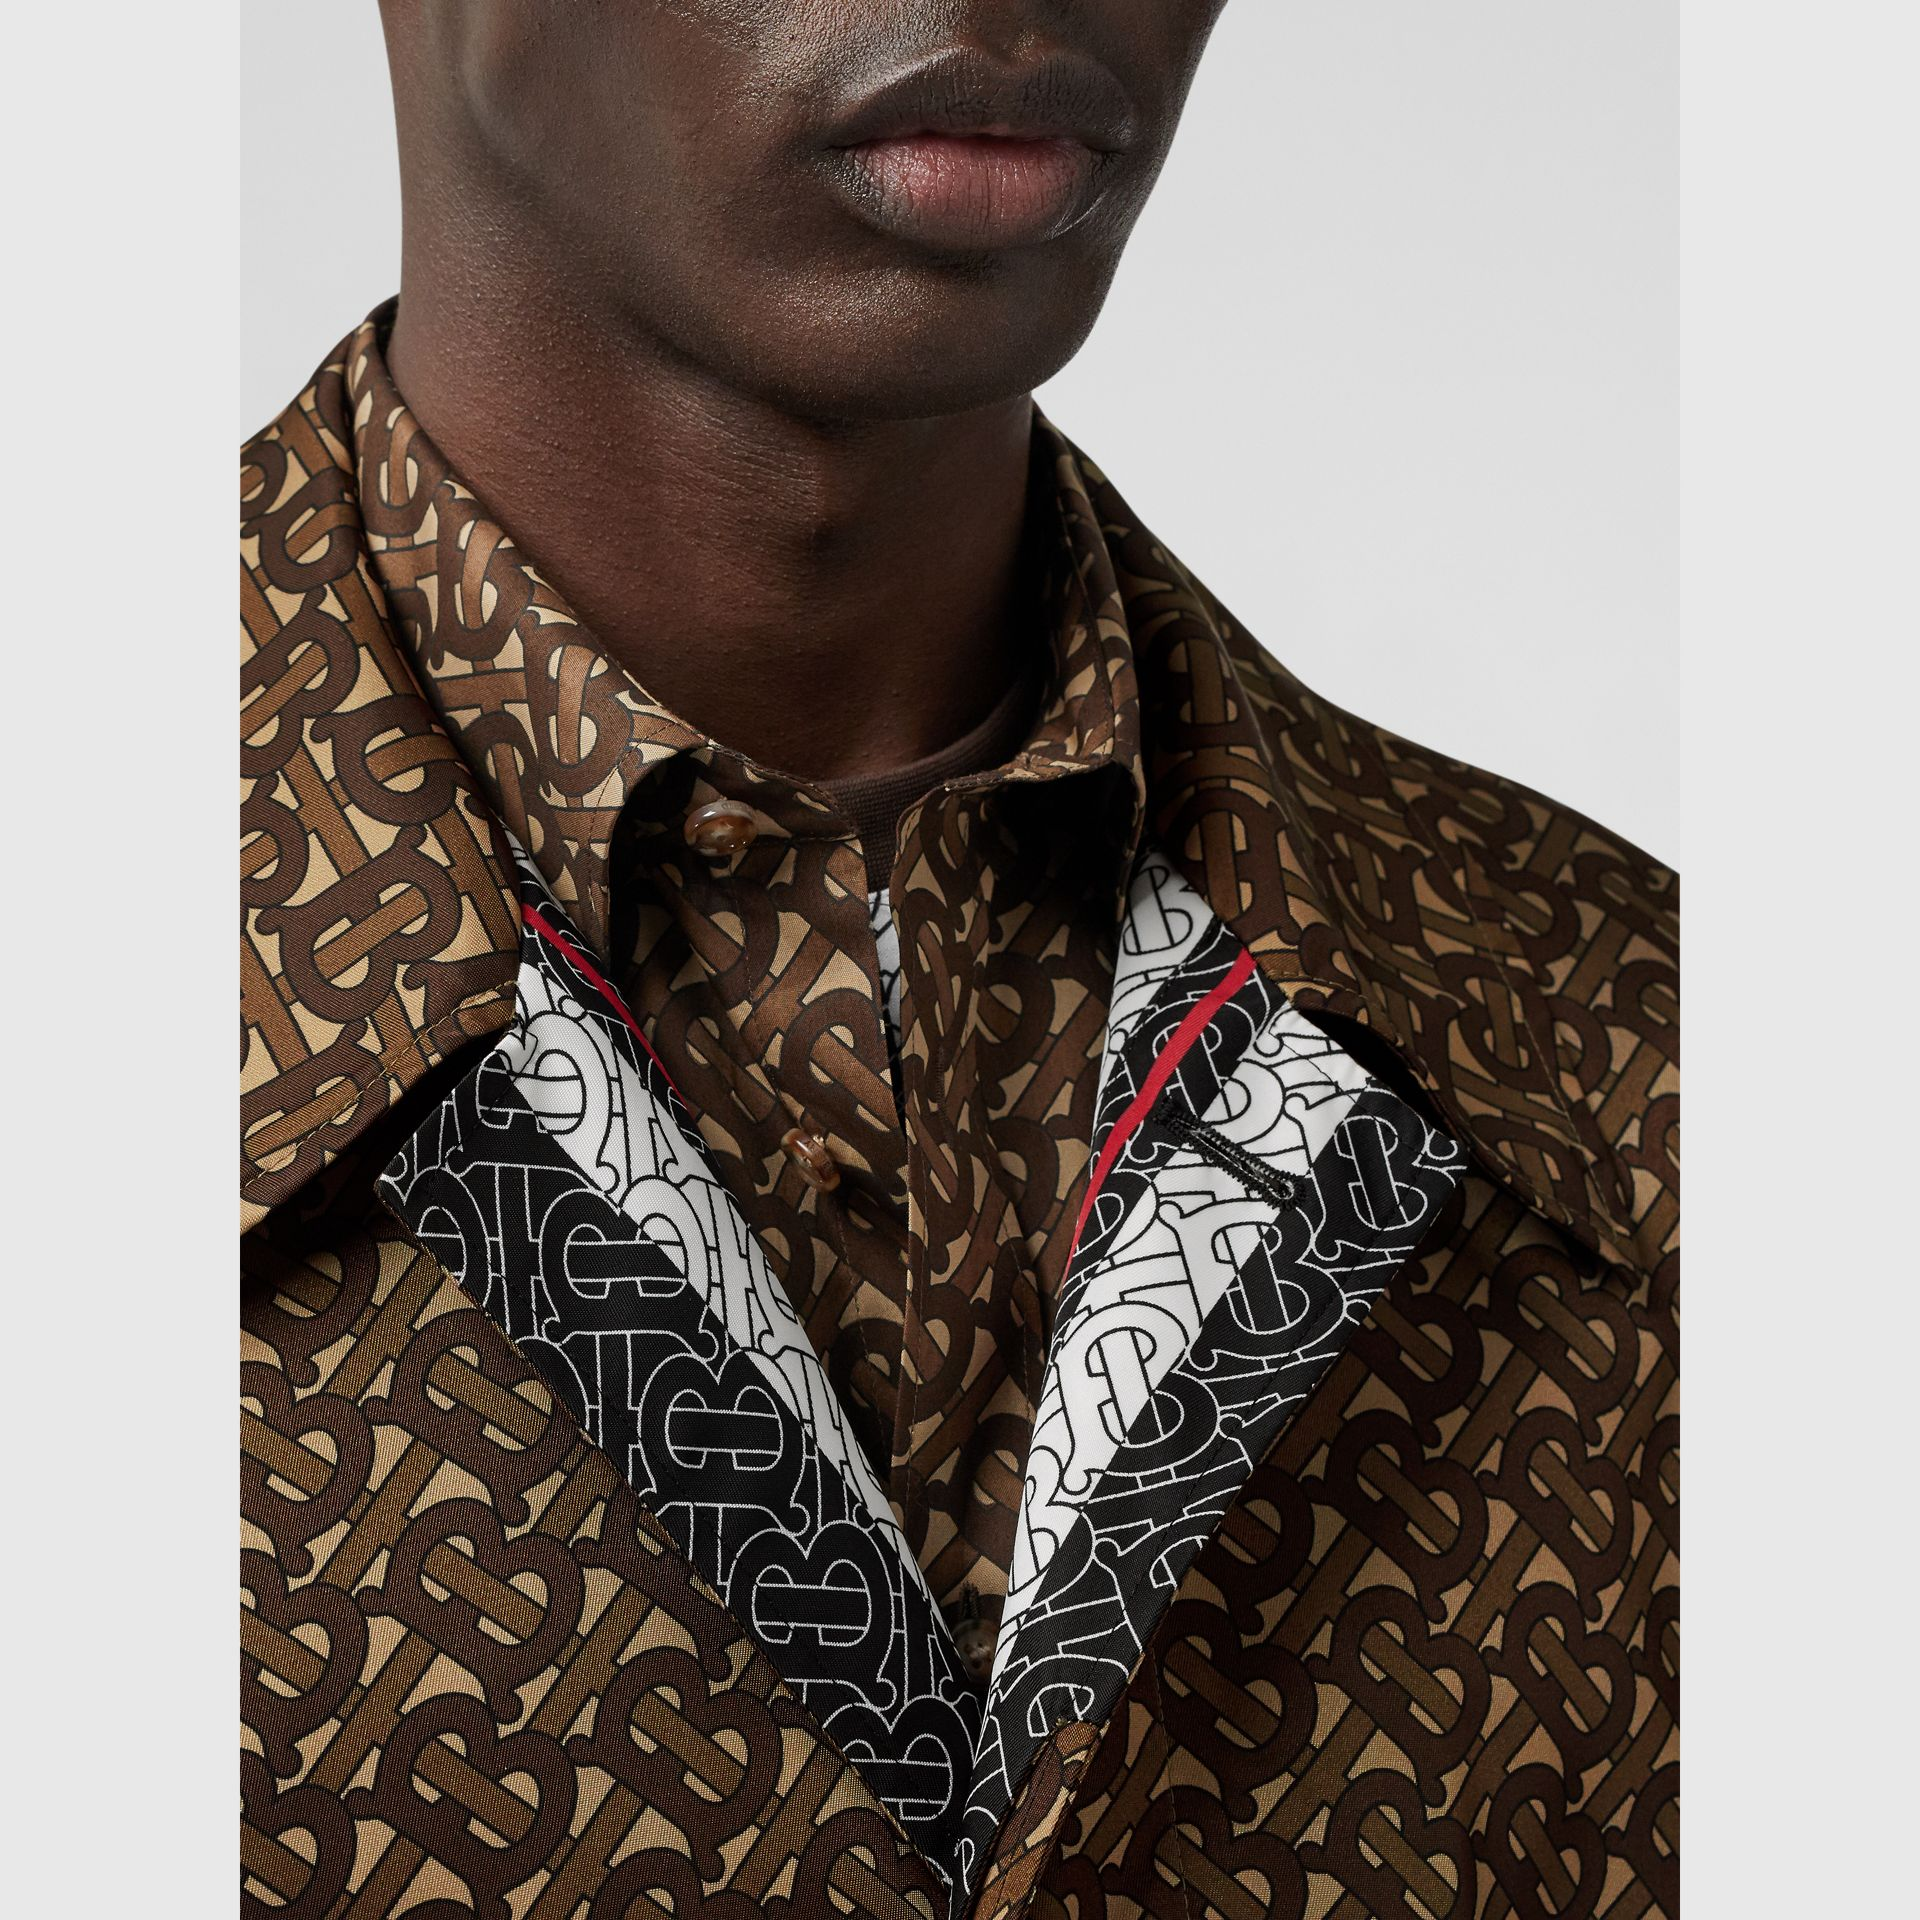 Monogram Stripe Print Nylon Car Coat in Bridle Brown - Men | Burberry Australia - gallery image 5